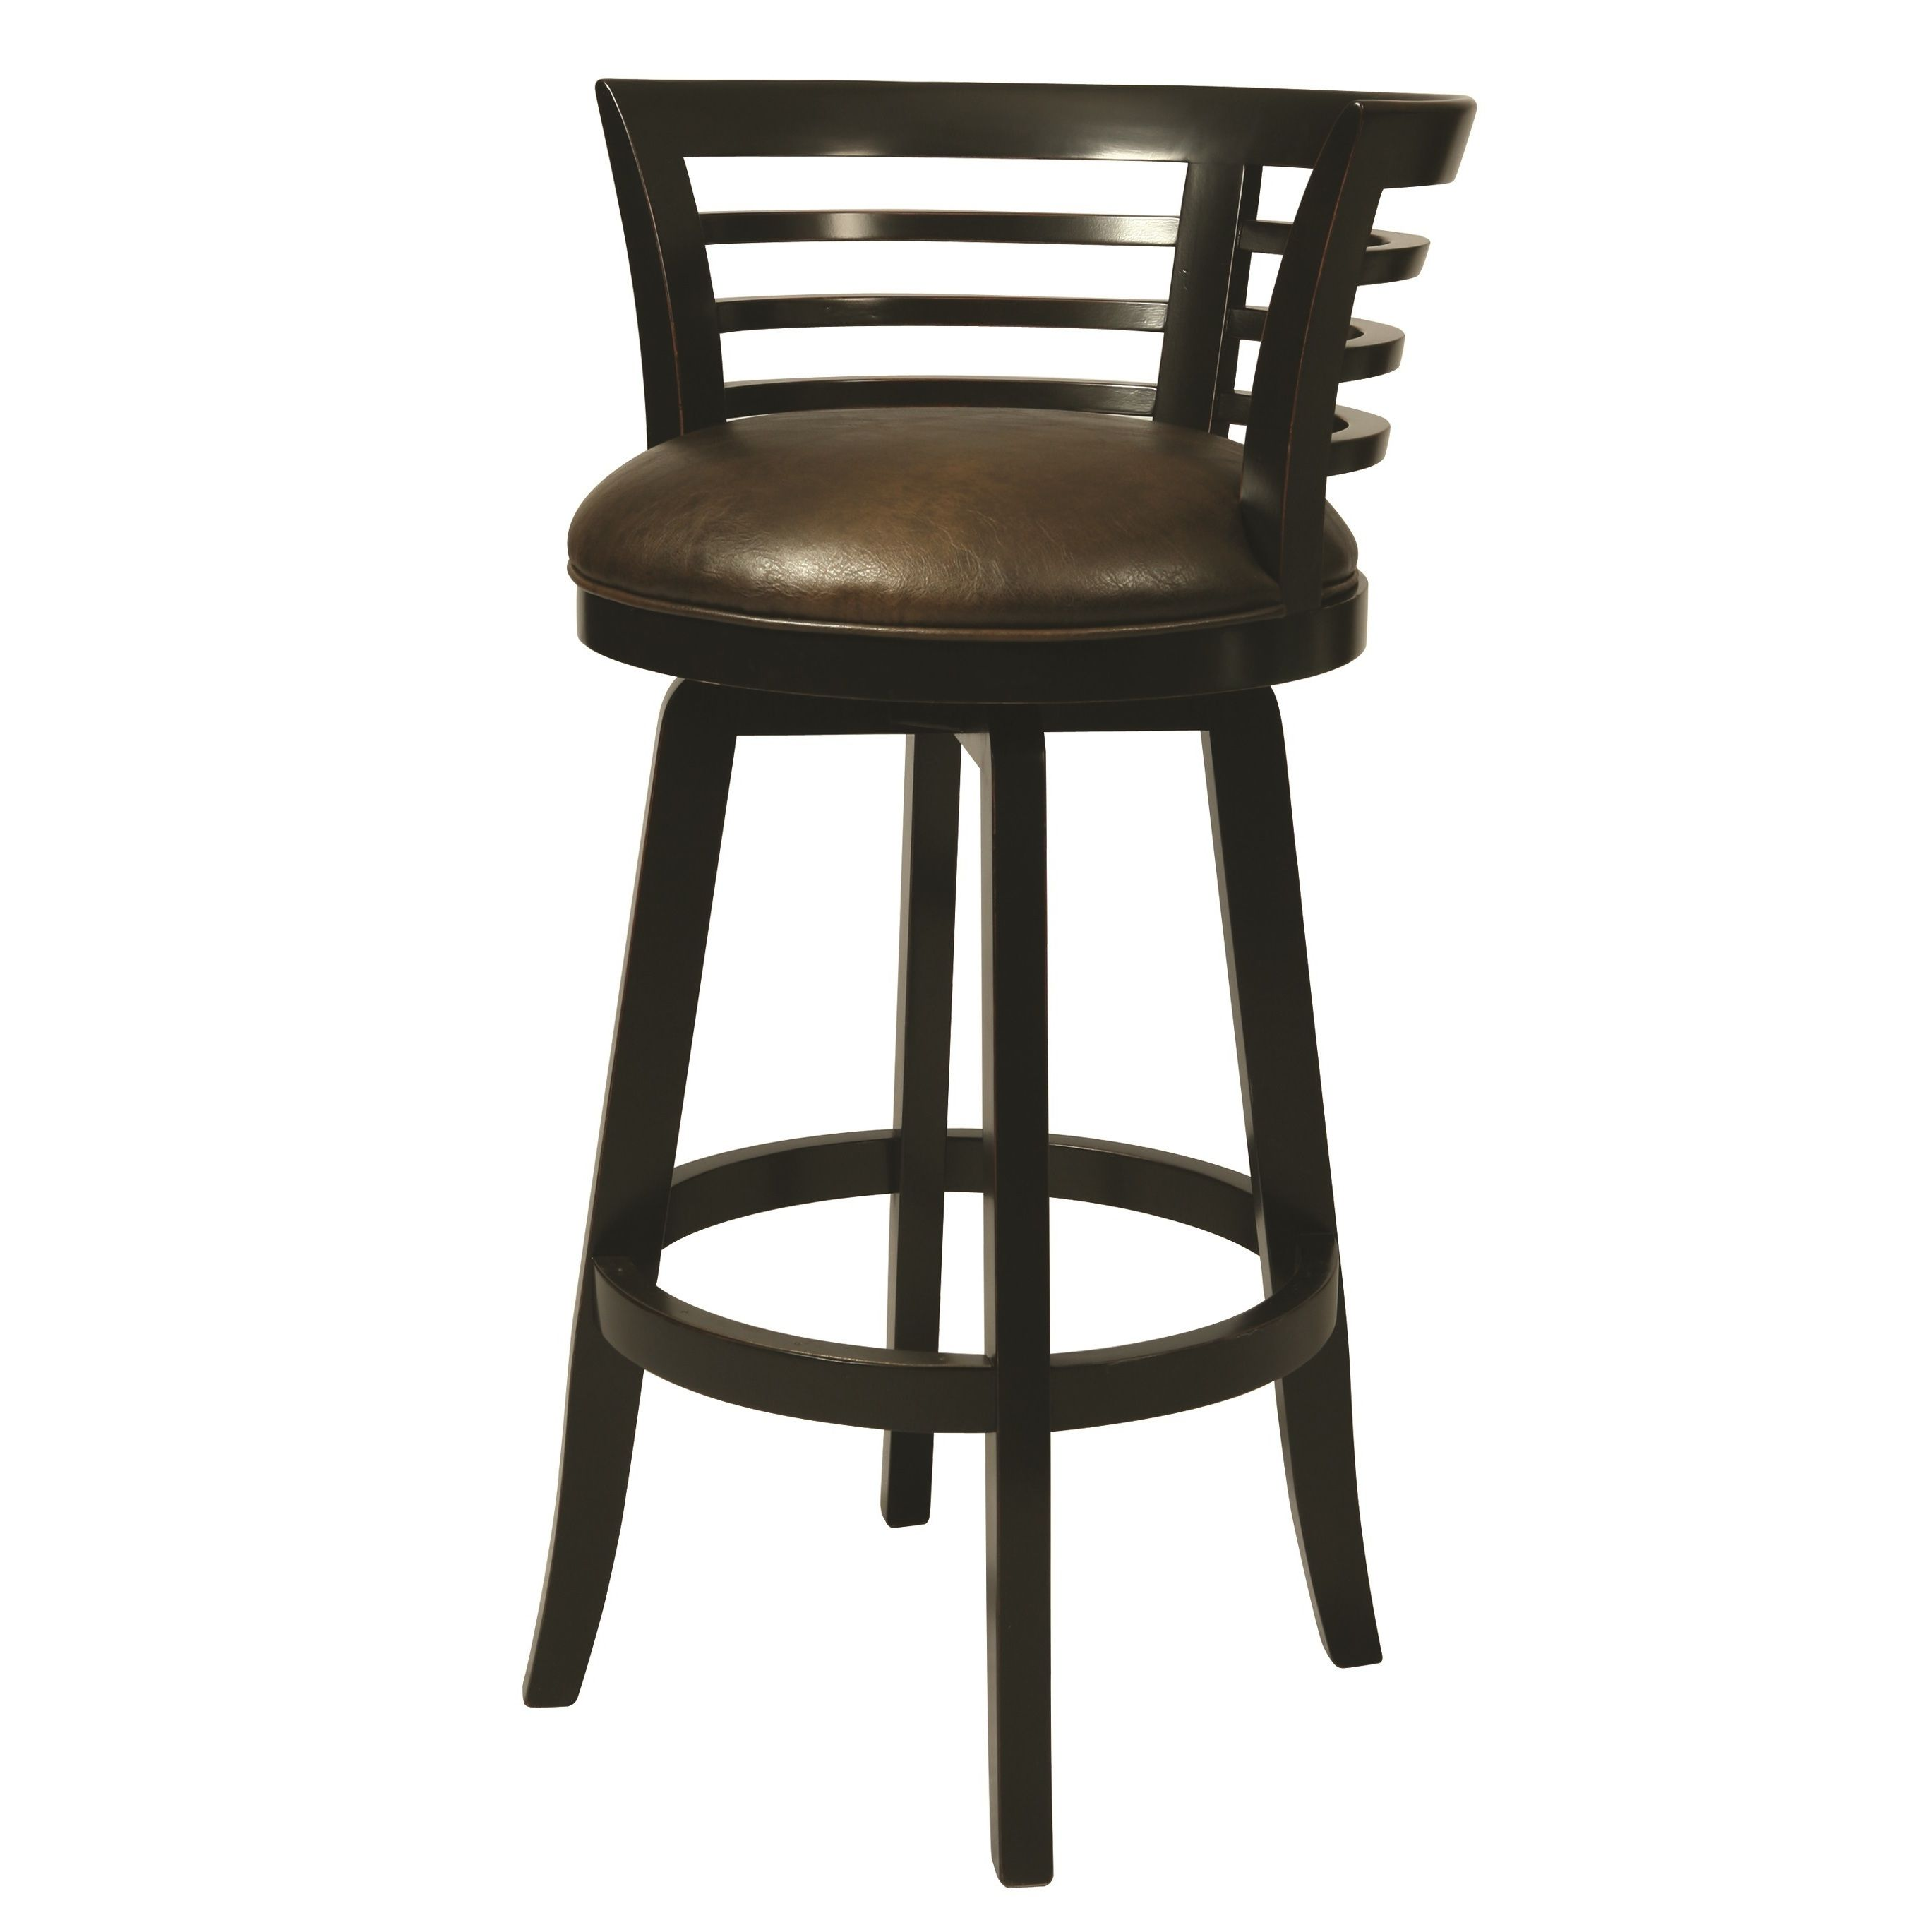 Incredible Ortona Black Finish Wood Faux Leather Swivel Stool 30 Short Links Chair Design For Home Short Linksinfo